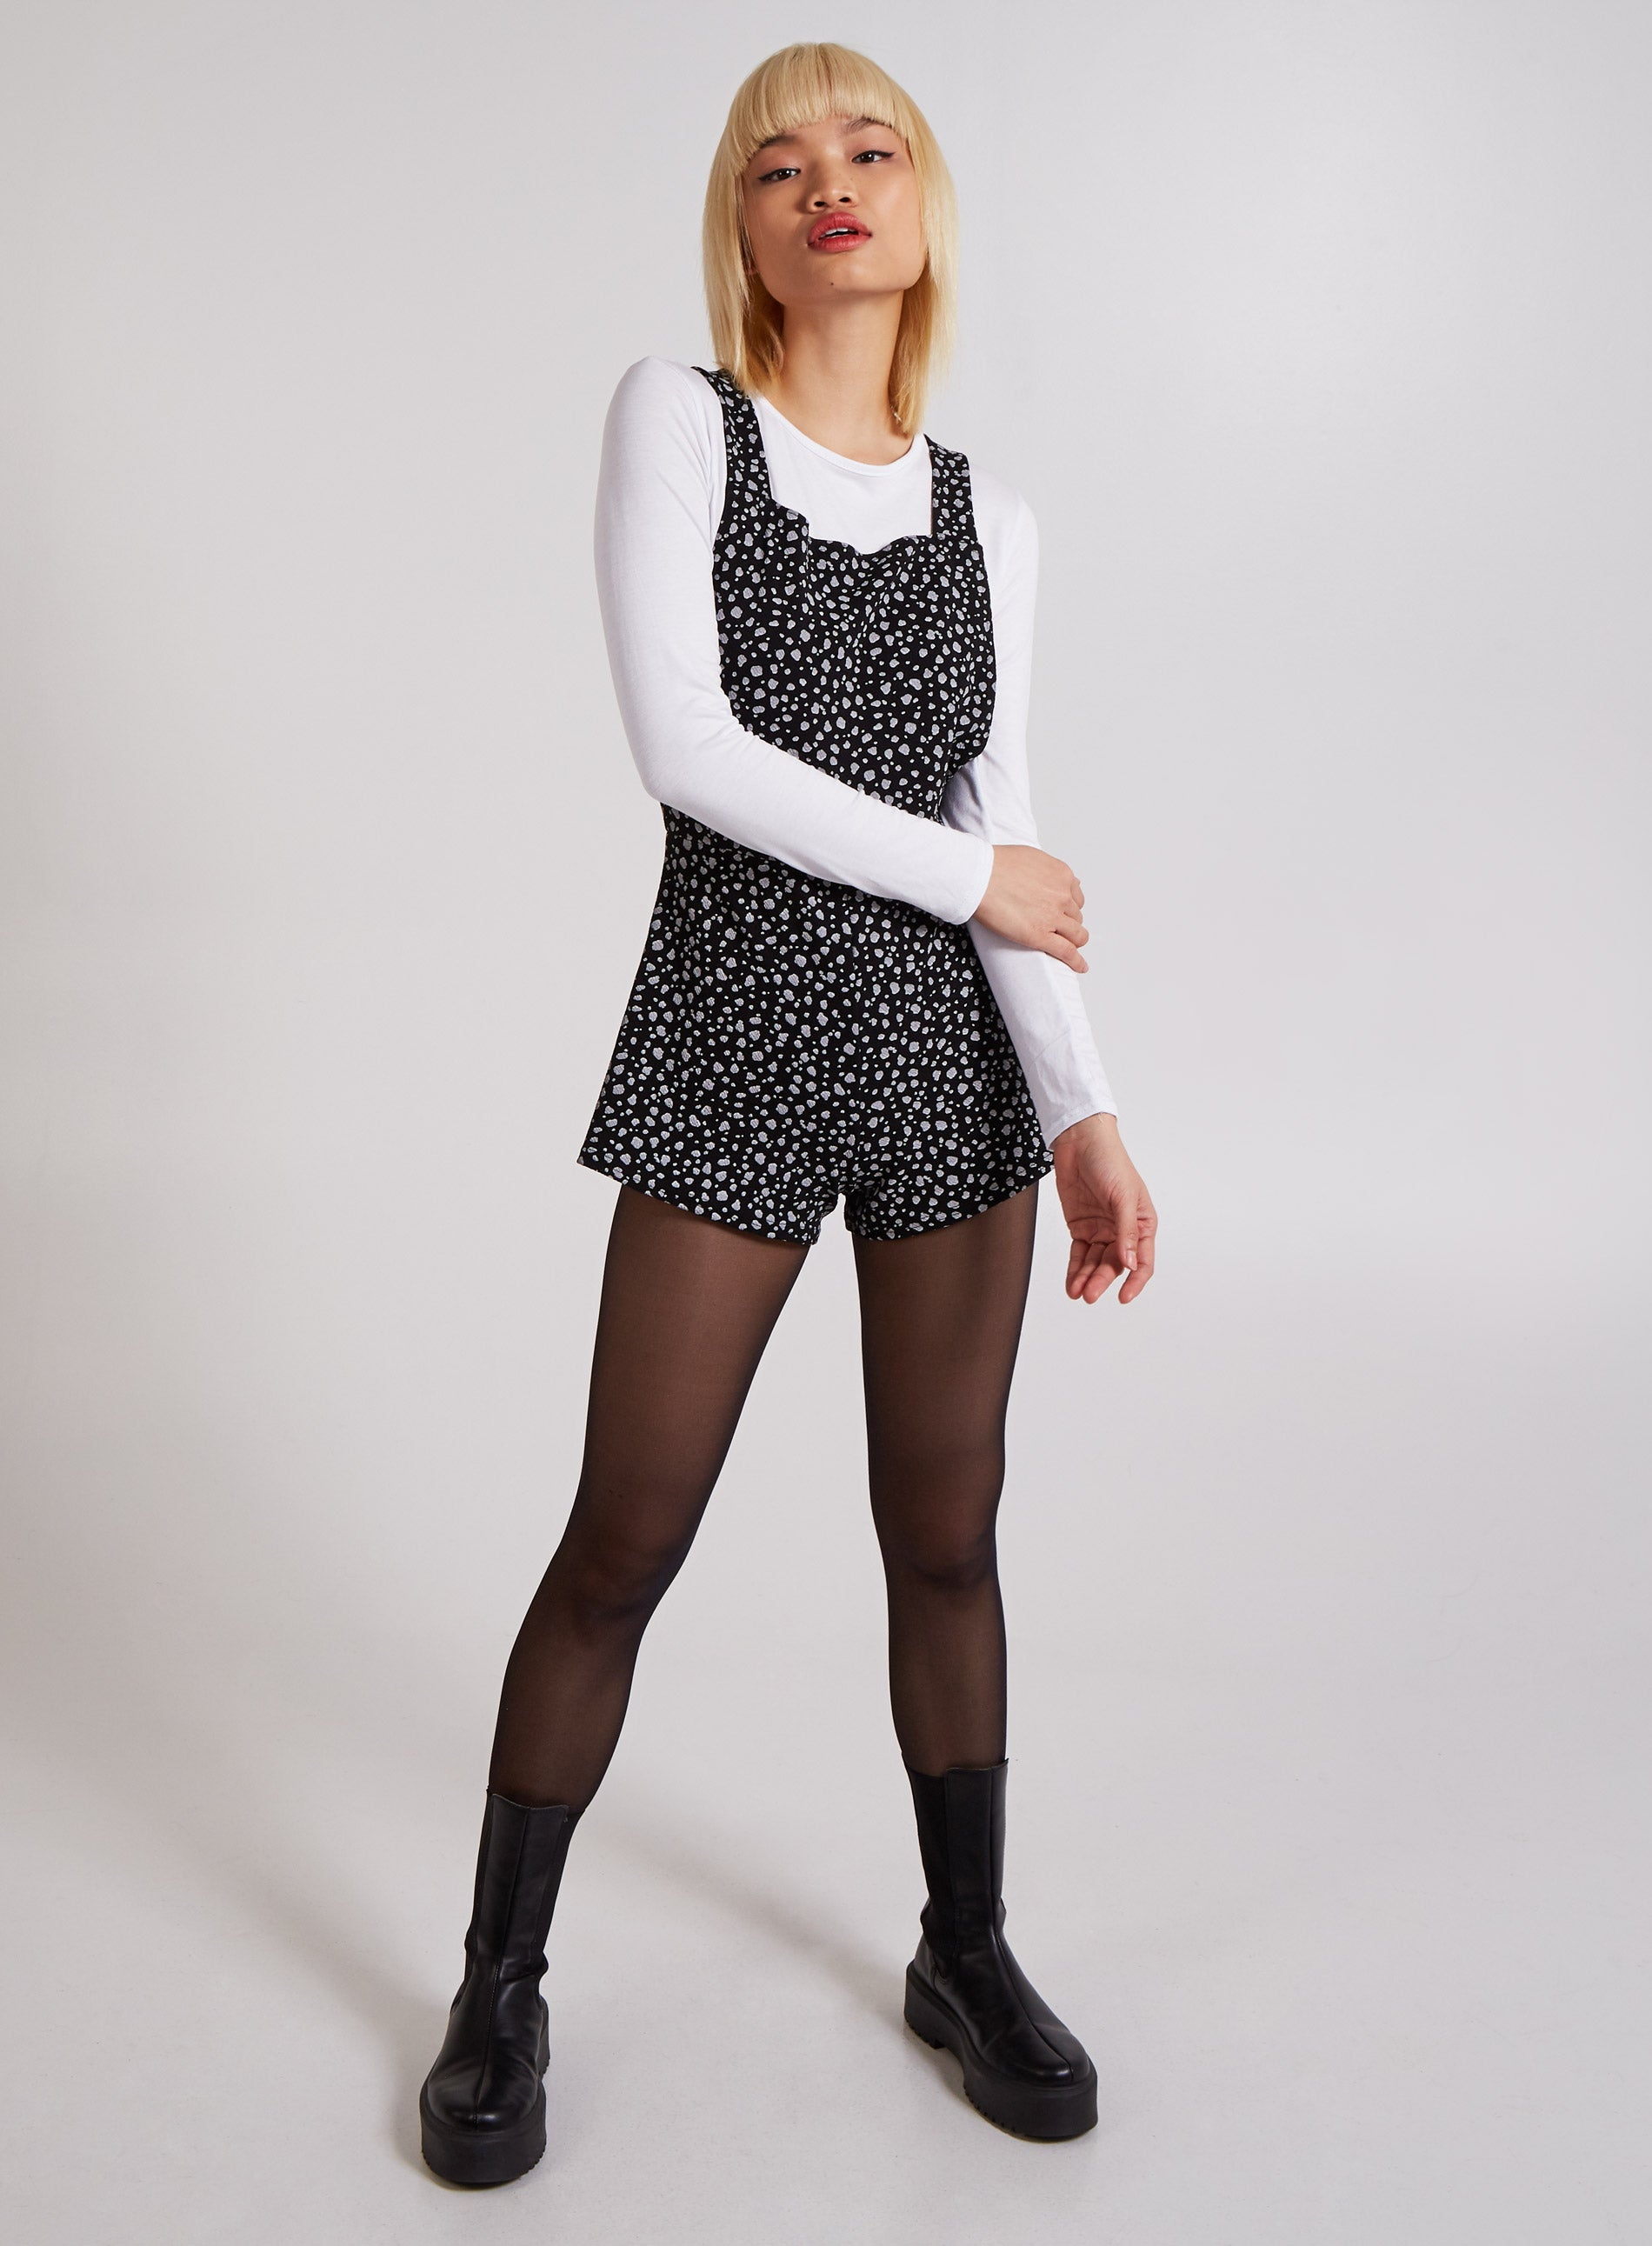 INNOCENT - 2in1 Monochrome Animal Playsuit